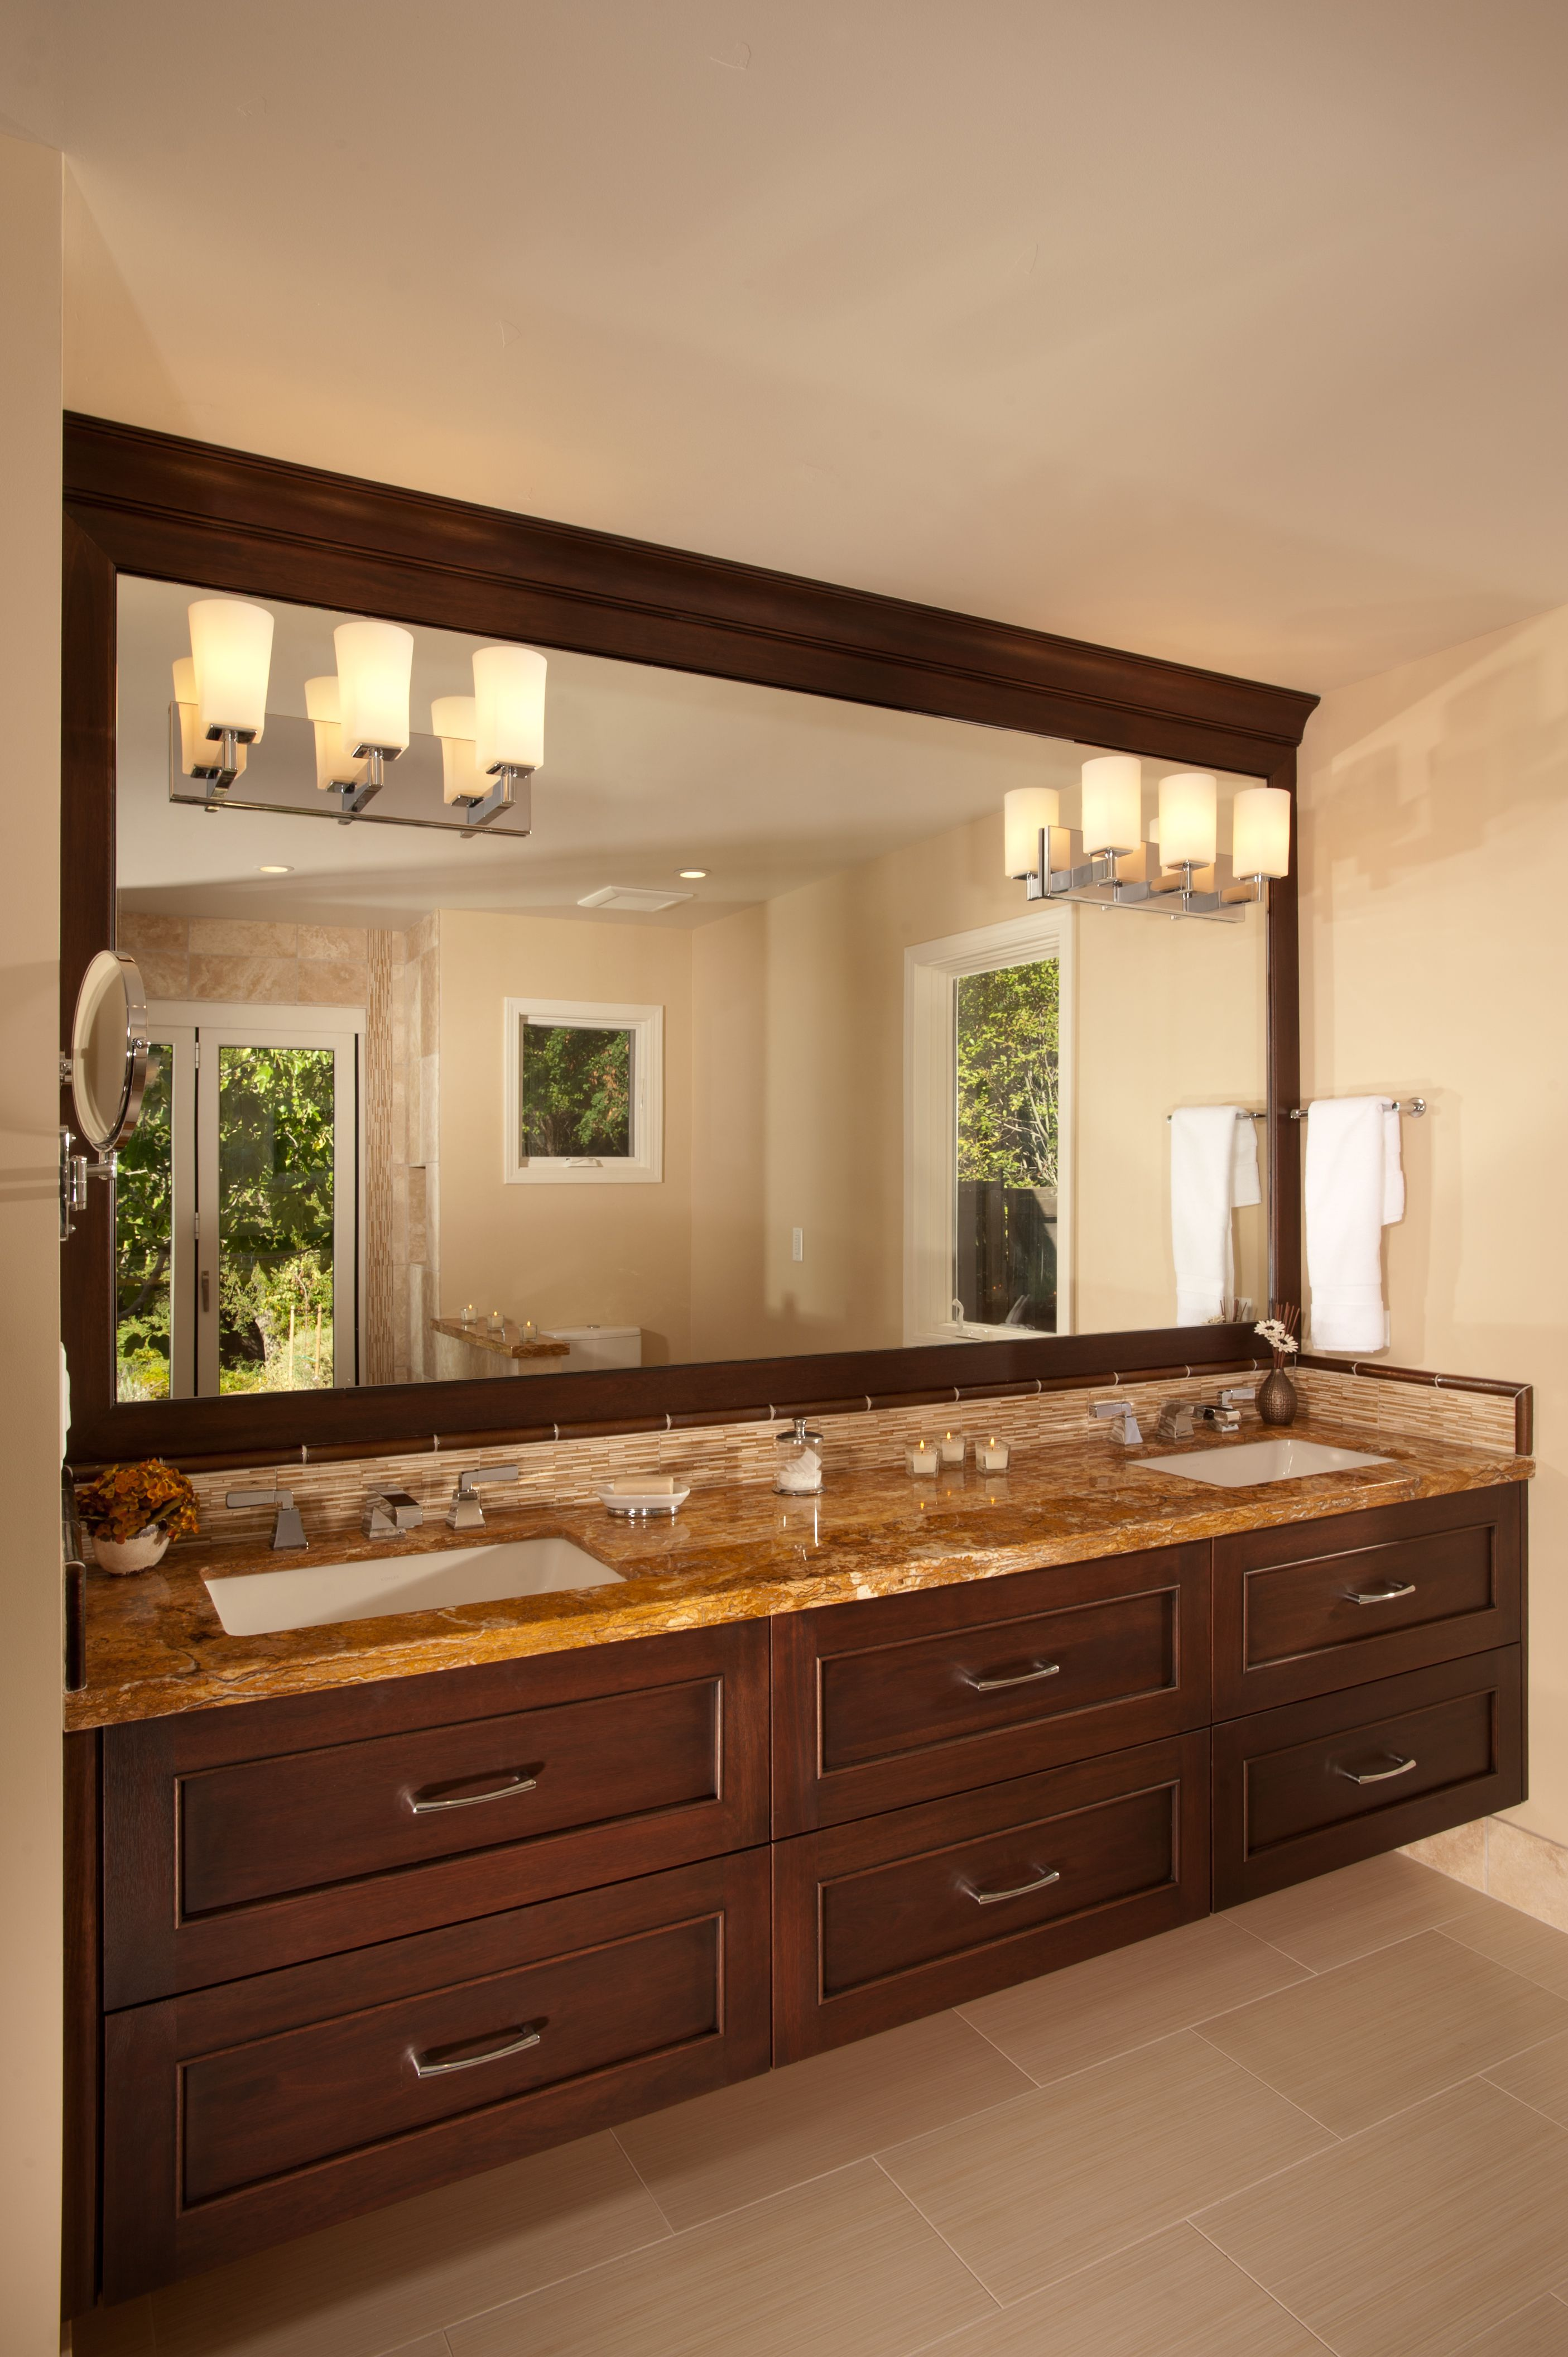 Cabinets: Dura Supreme Silverton Door Style   Lyptus Wood With Mocha With  Charcoal Glaze Finish. Custom Mirror Frame Matching Cabinets.